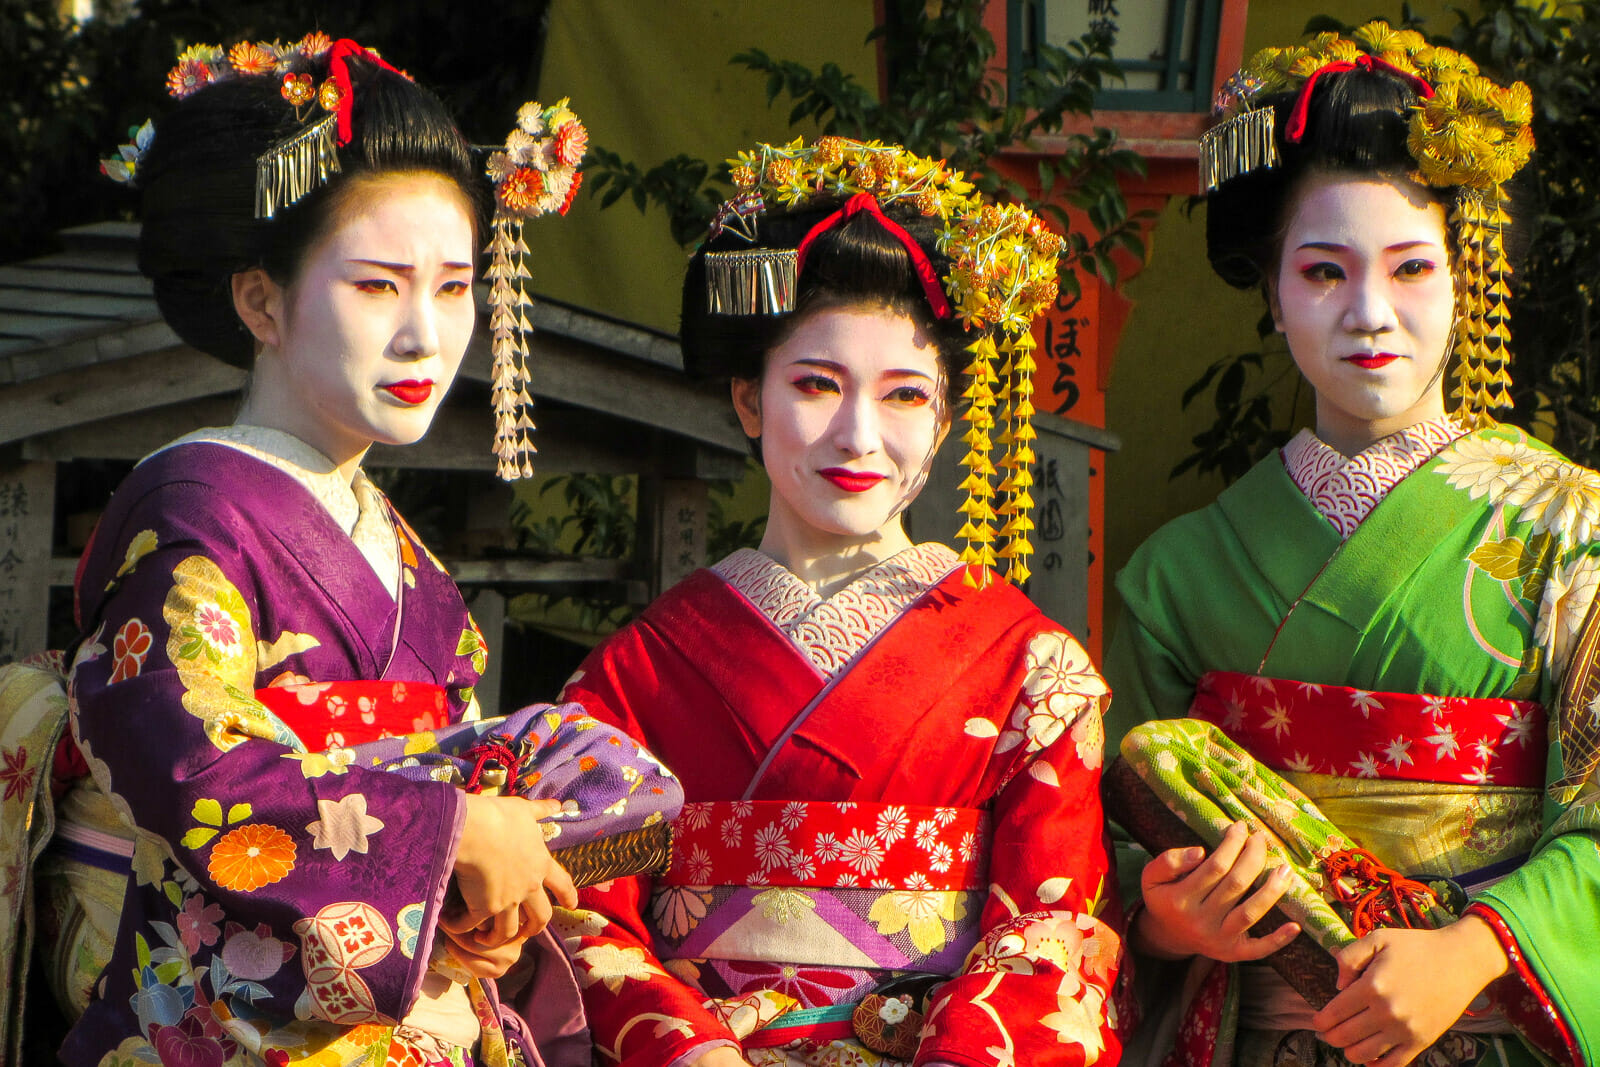 Tourists dressed as Geishas in Kyoto